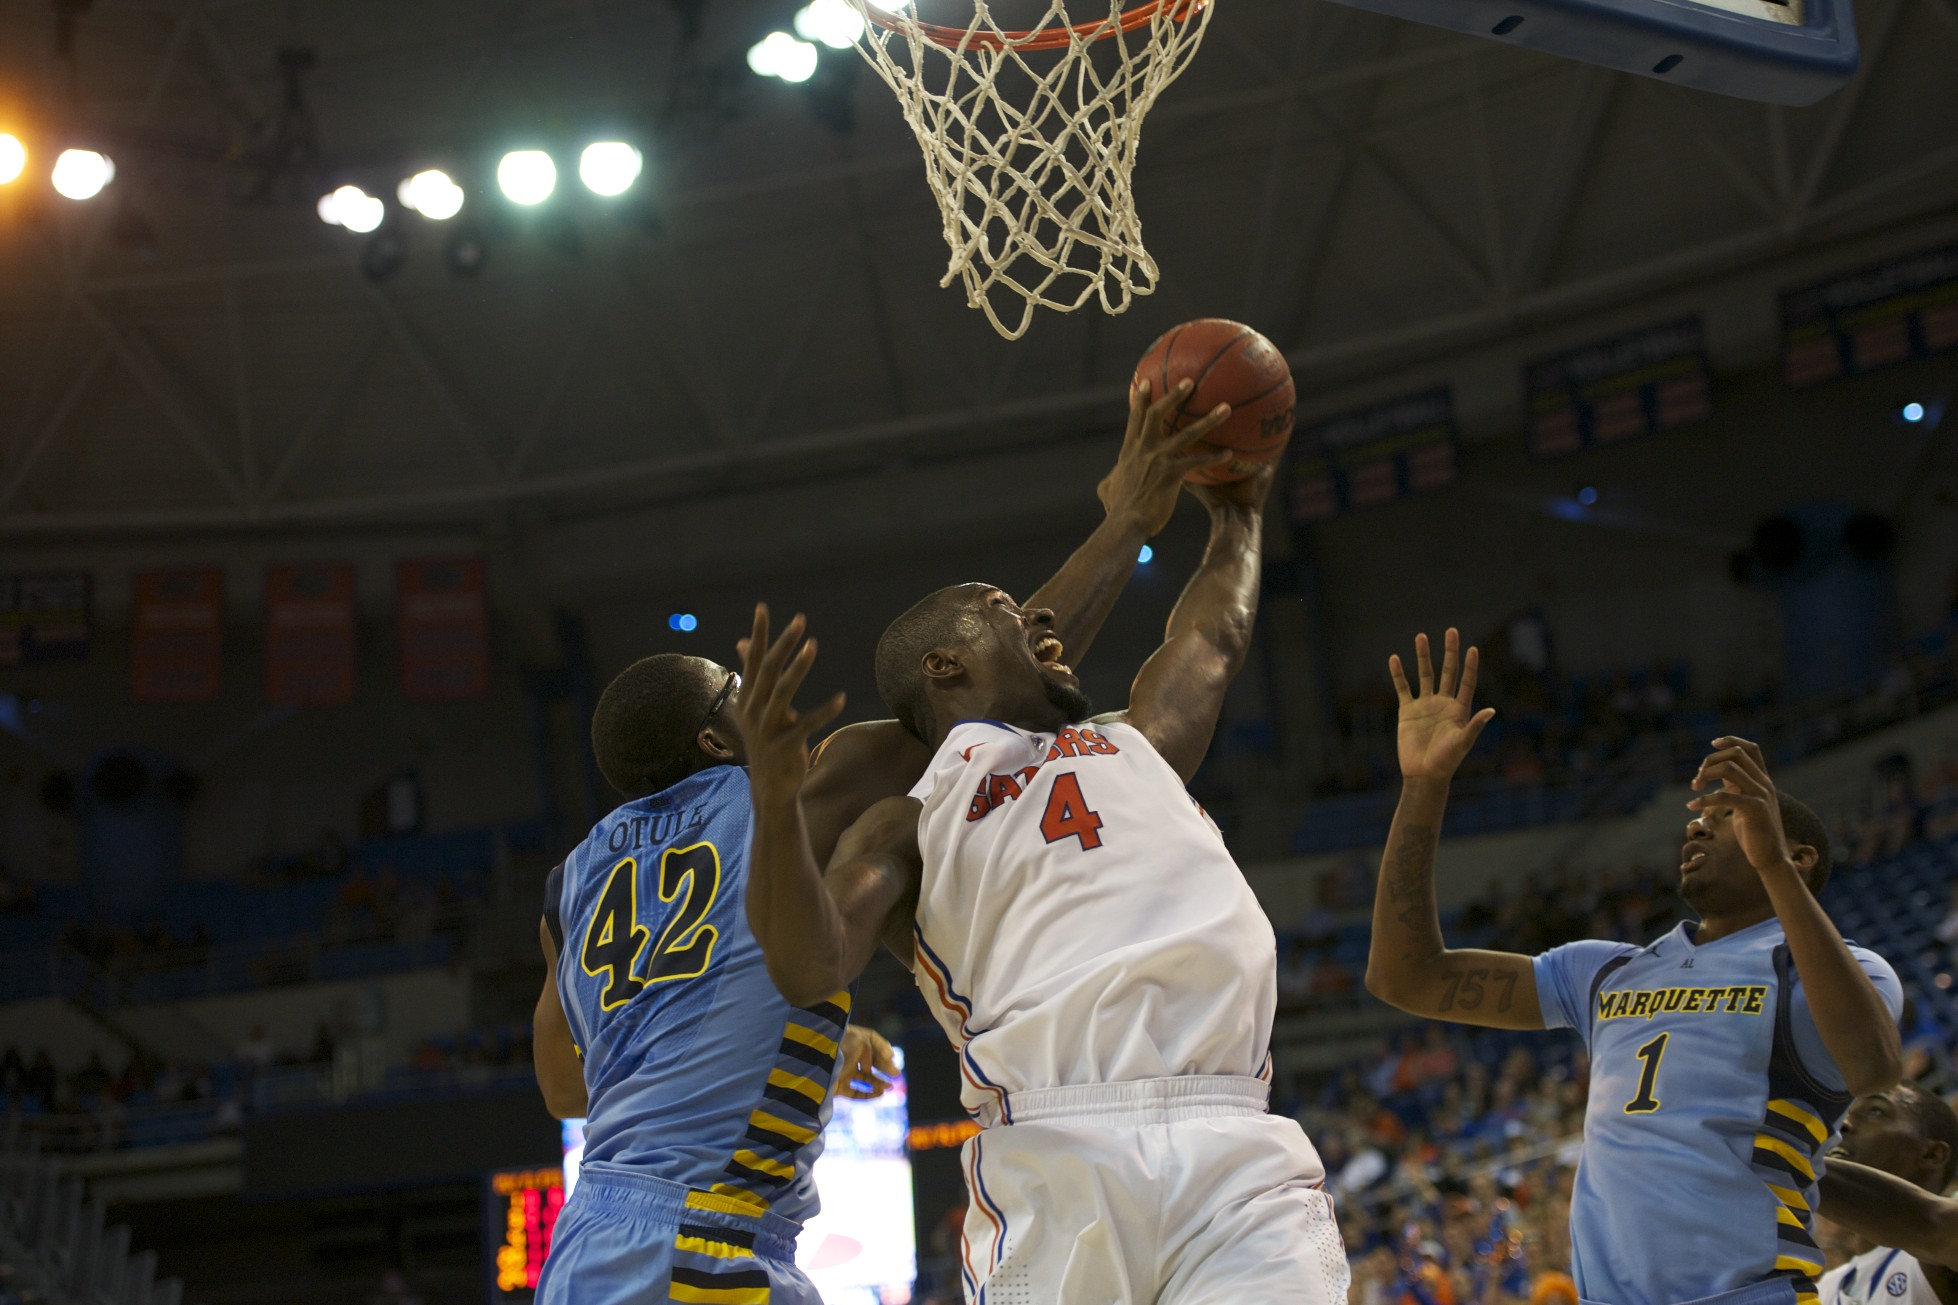 Patric Young (4) gets a rebound for the Gators in the second half Thursday night.